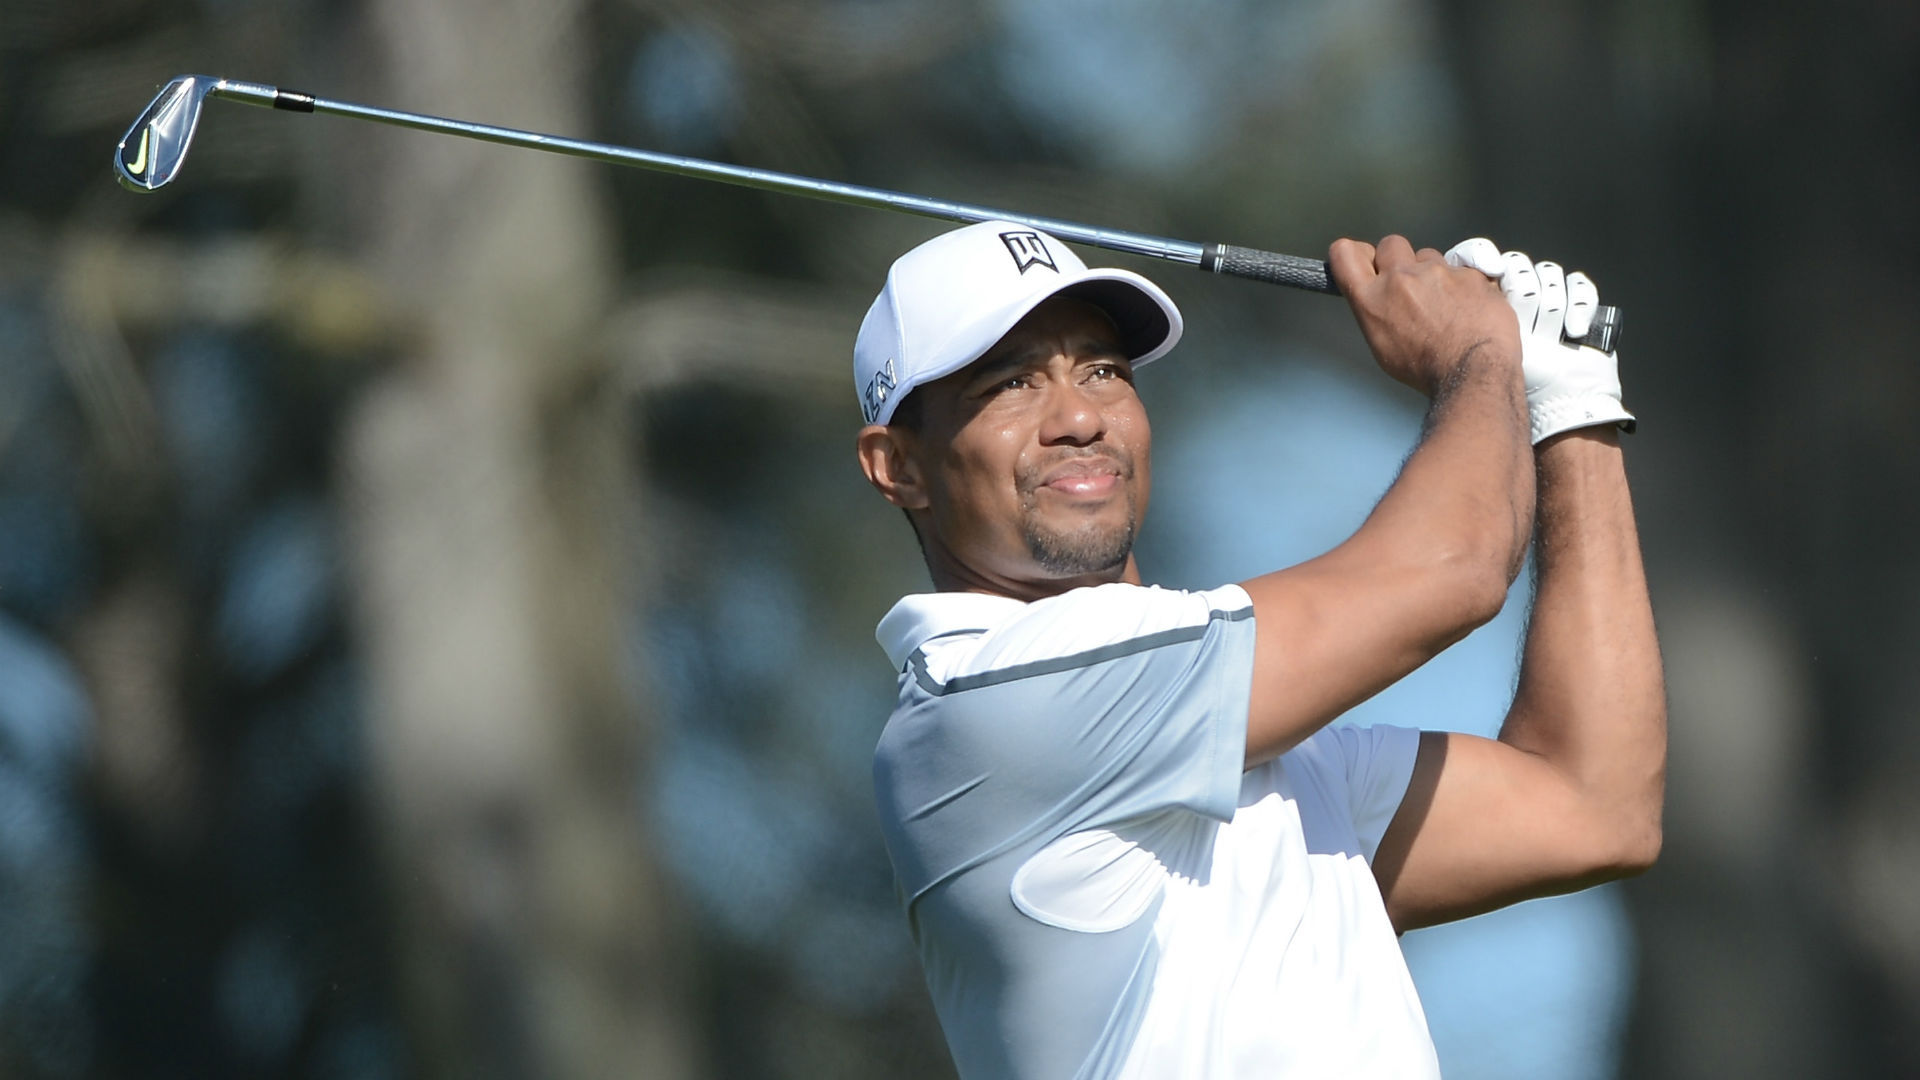 Woods-Tiger-03132015-US-News-Getty-FTR